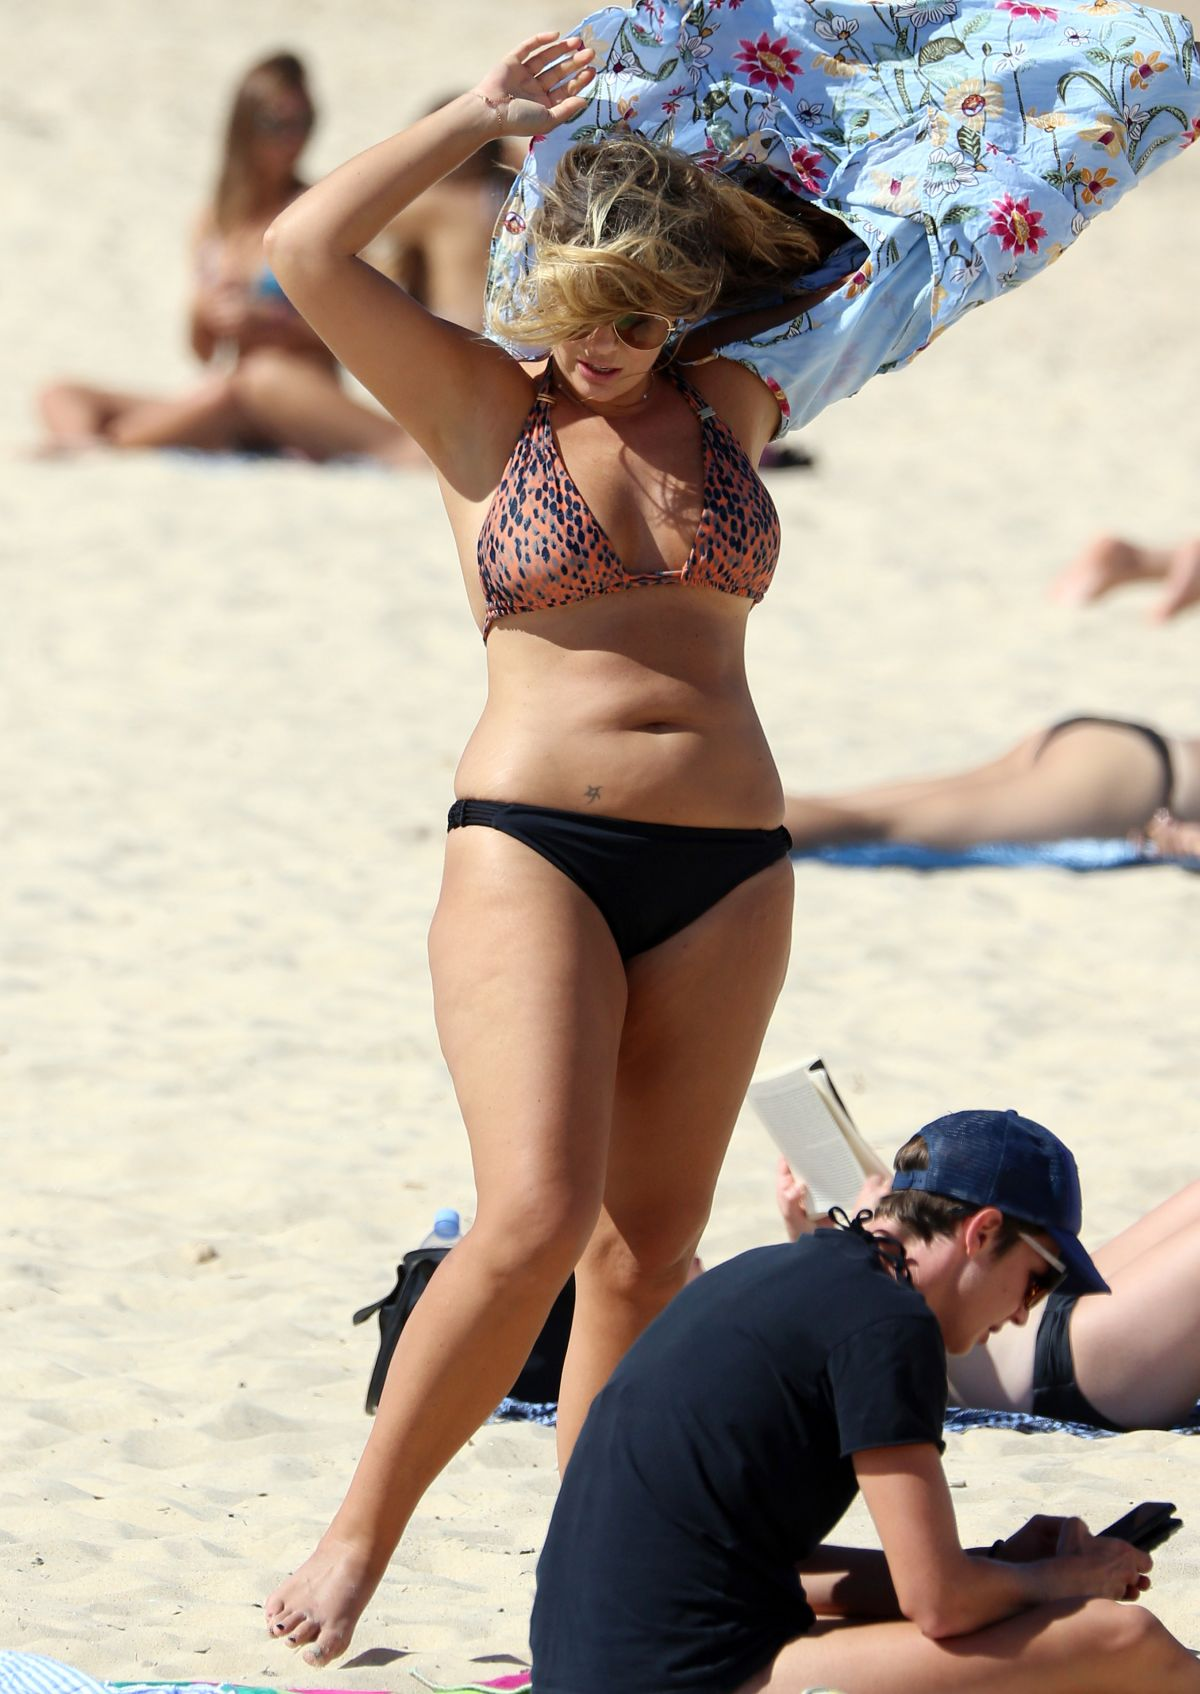 Fiona Falkiner in Bikini at Coogee Beach in Sydney Pic 26 of 35